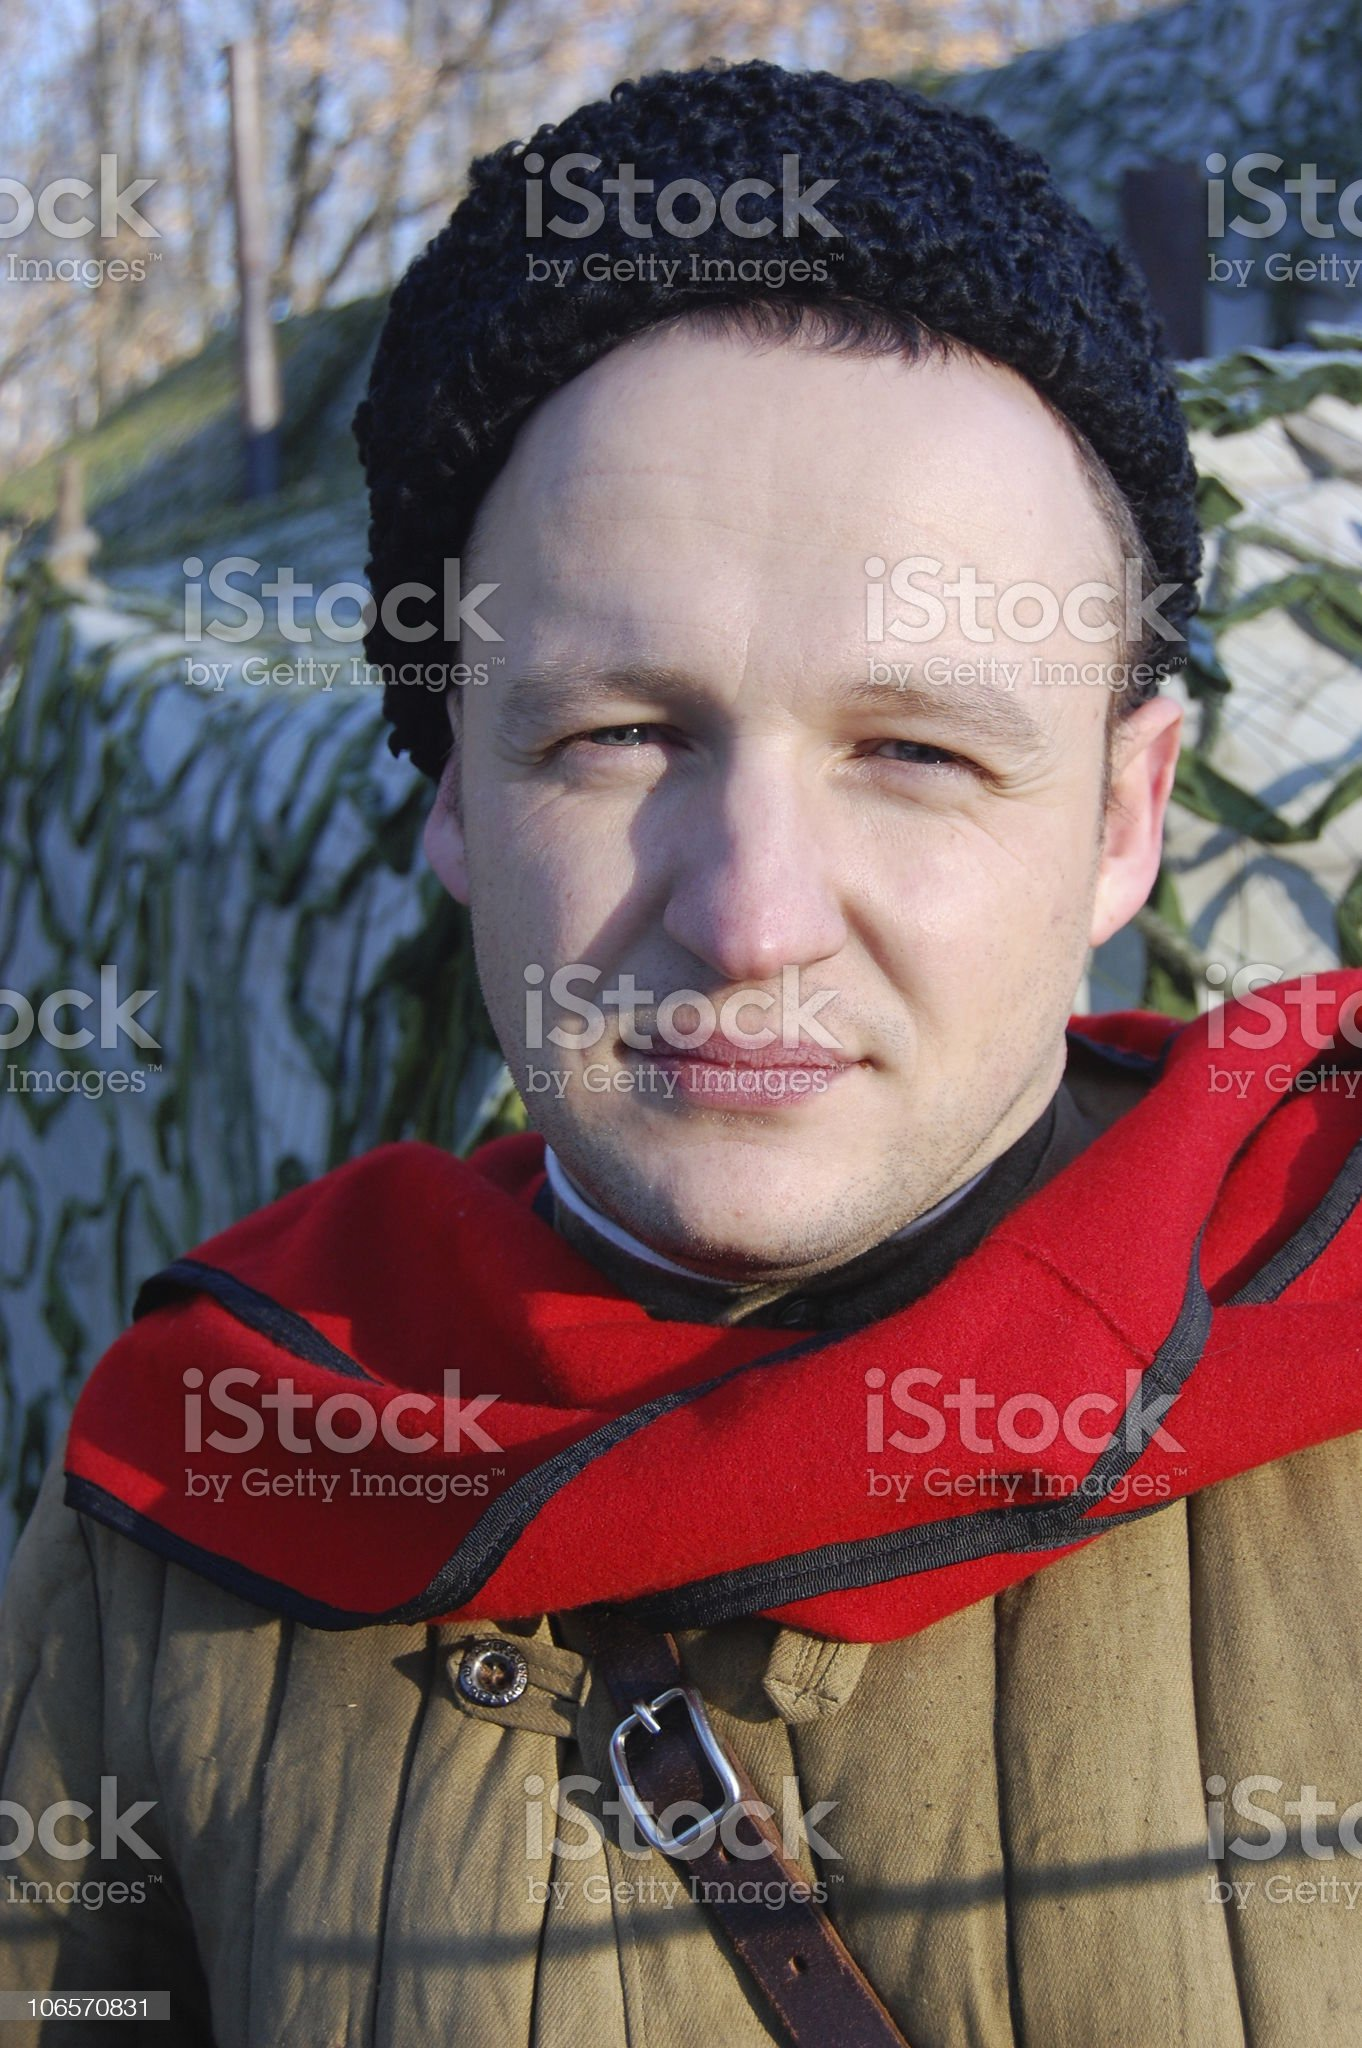 Person in Soviet WW2 military uniform. royalty-free stock photo